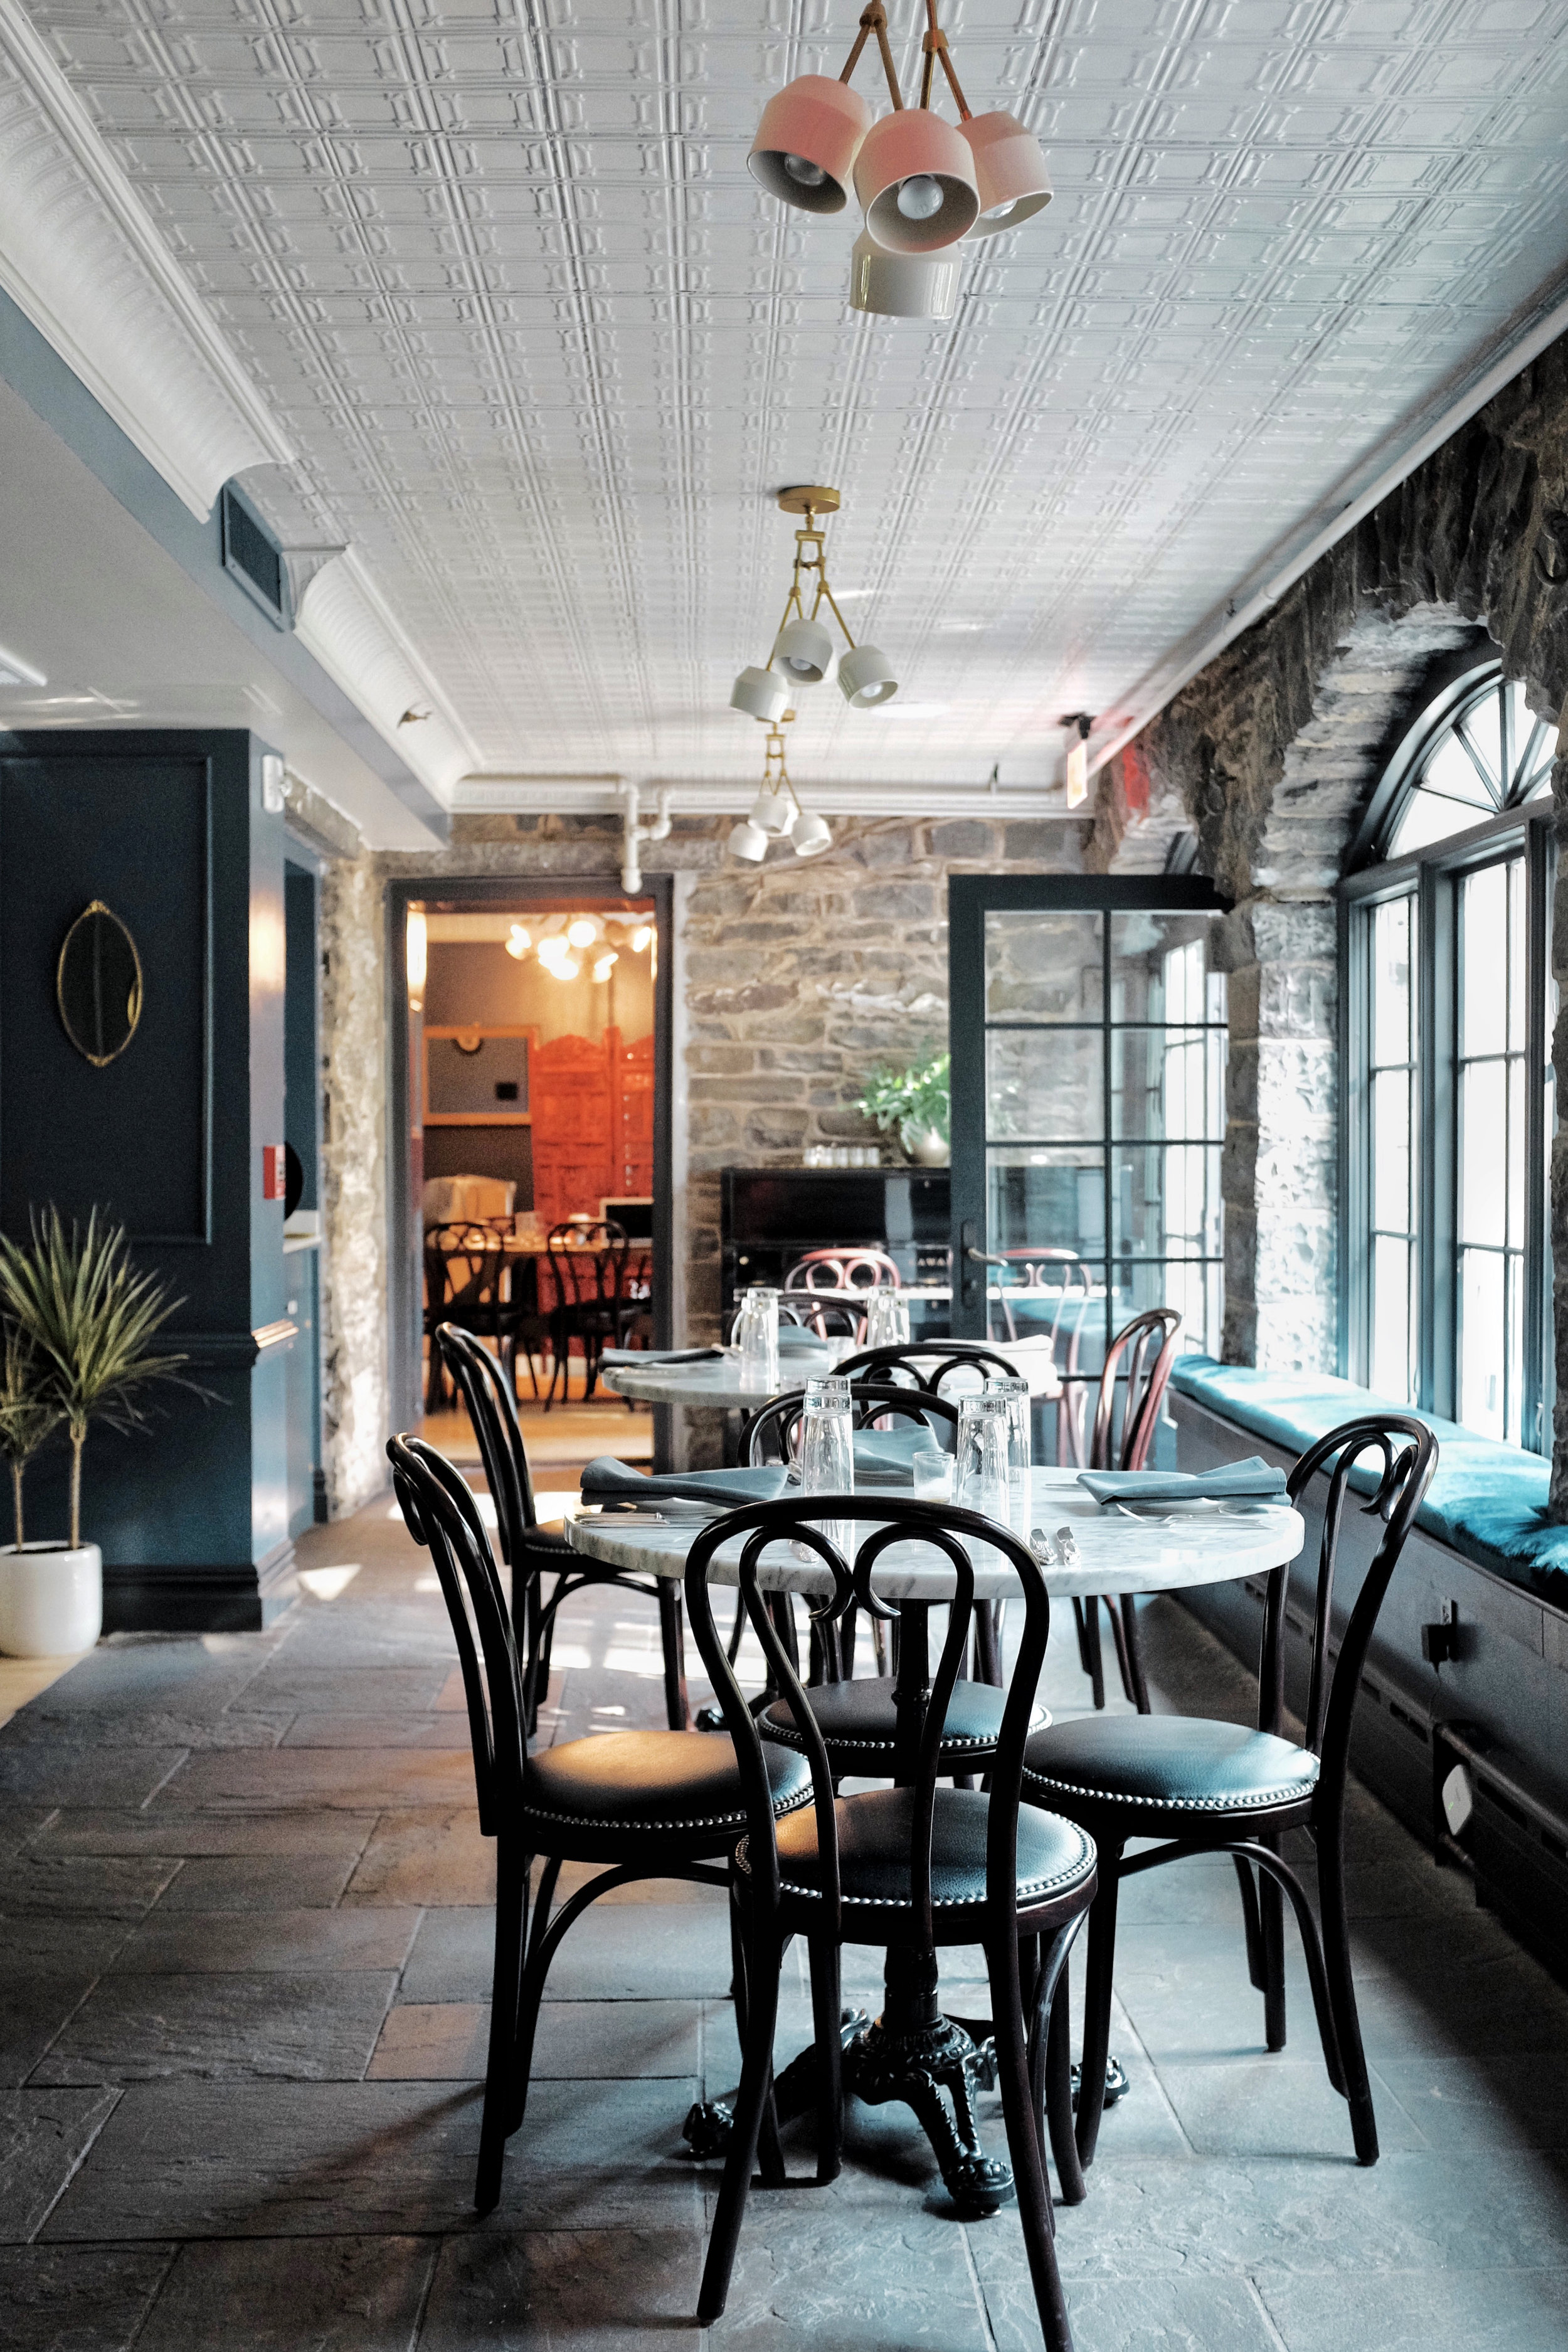 butterfield places to eat in catskills